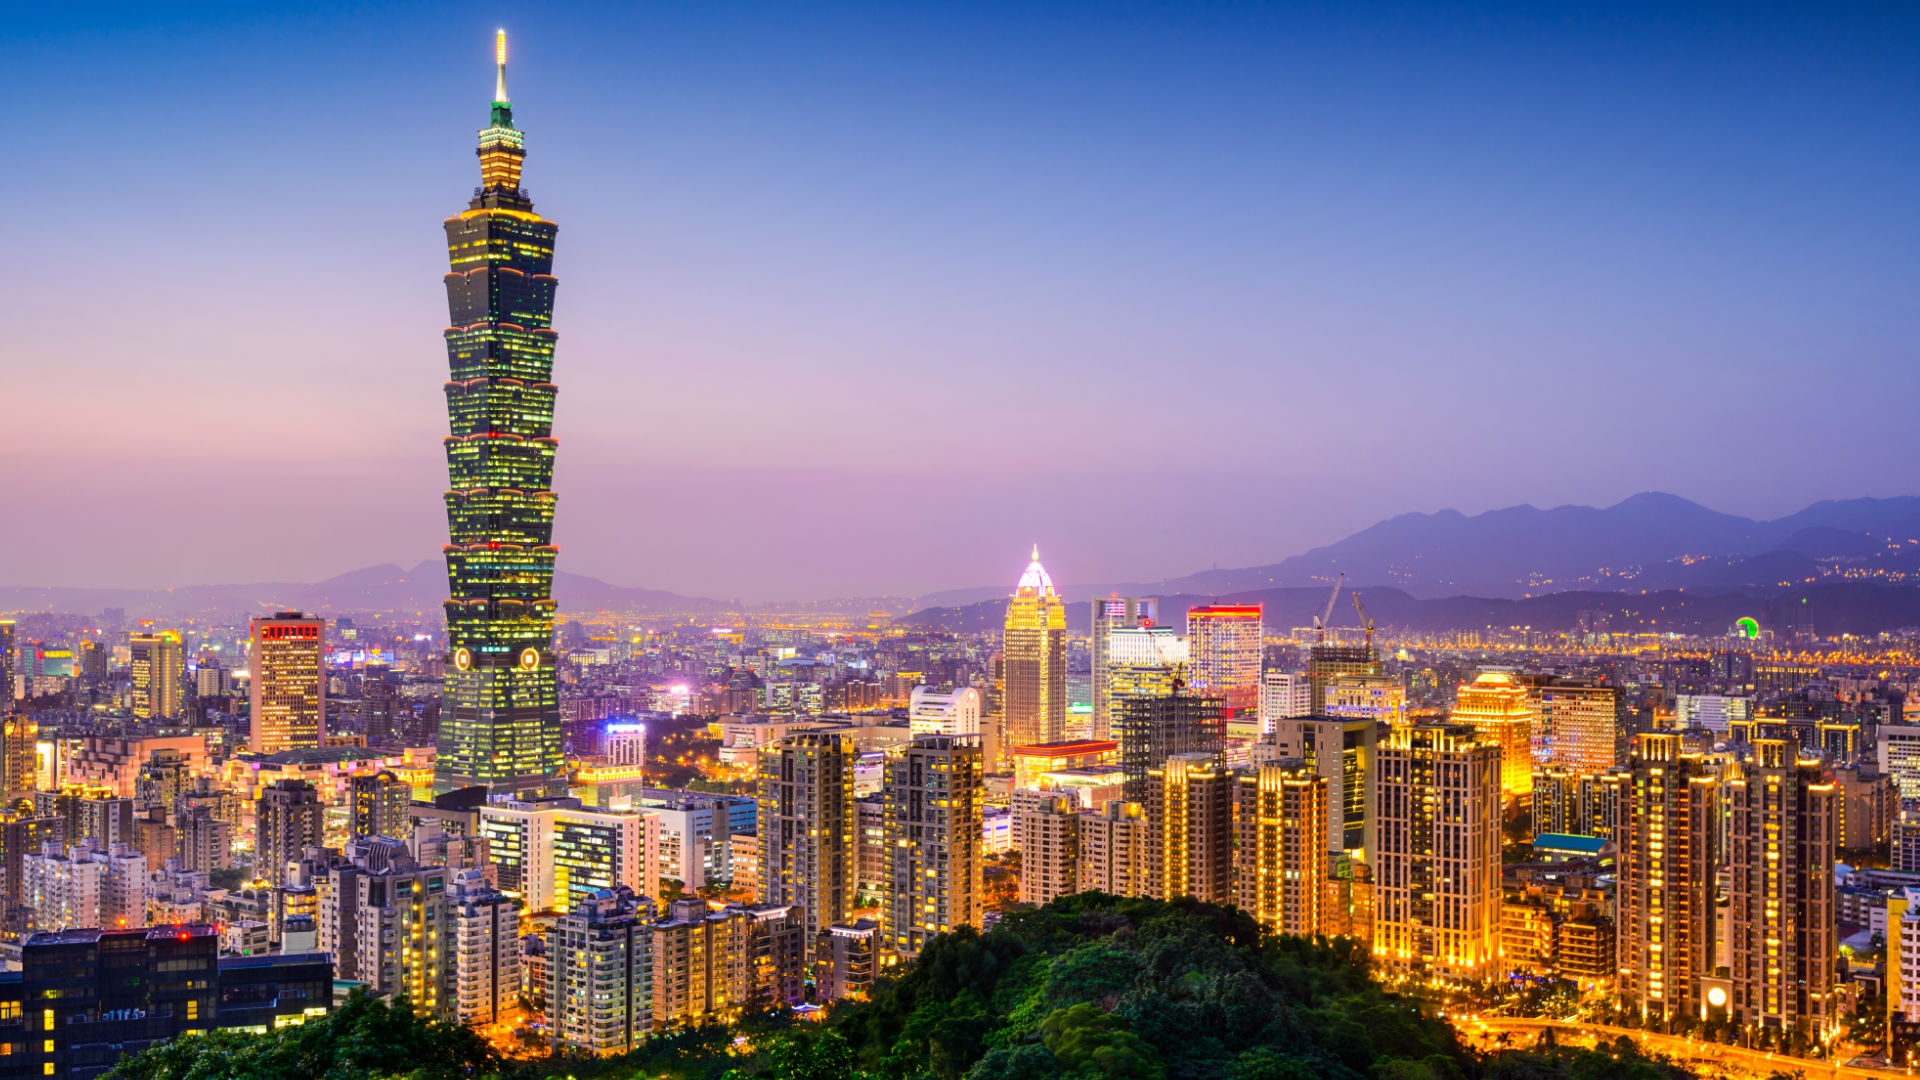 Winding Trails, Stunning Temples, and Epic Eats: The 4-Day Weekend in Taipei